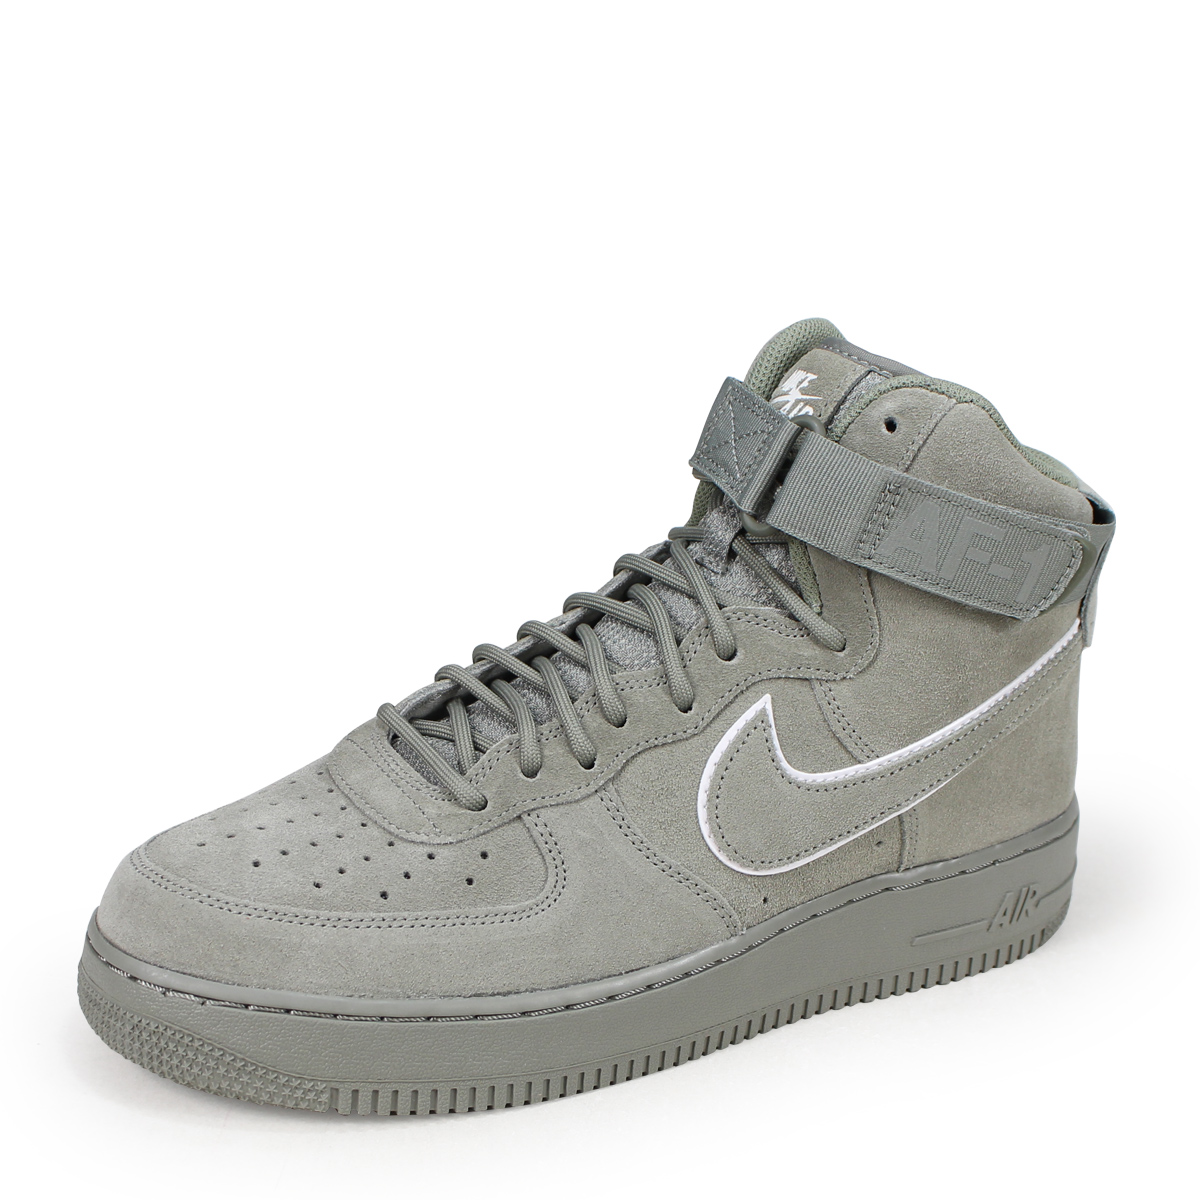 separation shoes 16bfb fc76c ... NIKE AIR FORCE 1 HIGH 07 LV8 Nike air force 1 high sneakers men AA1118-  ...